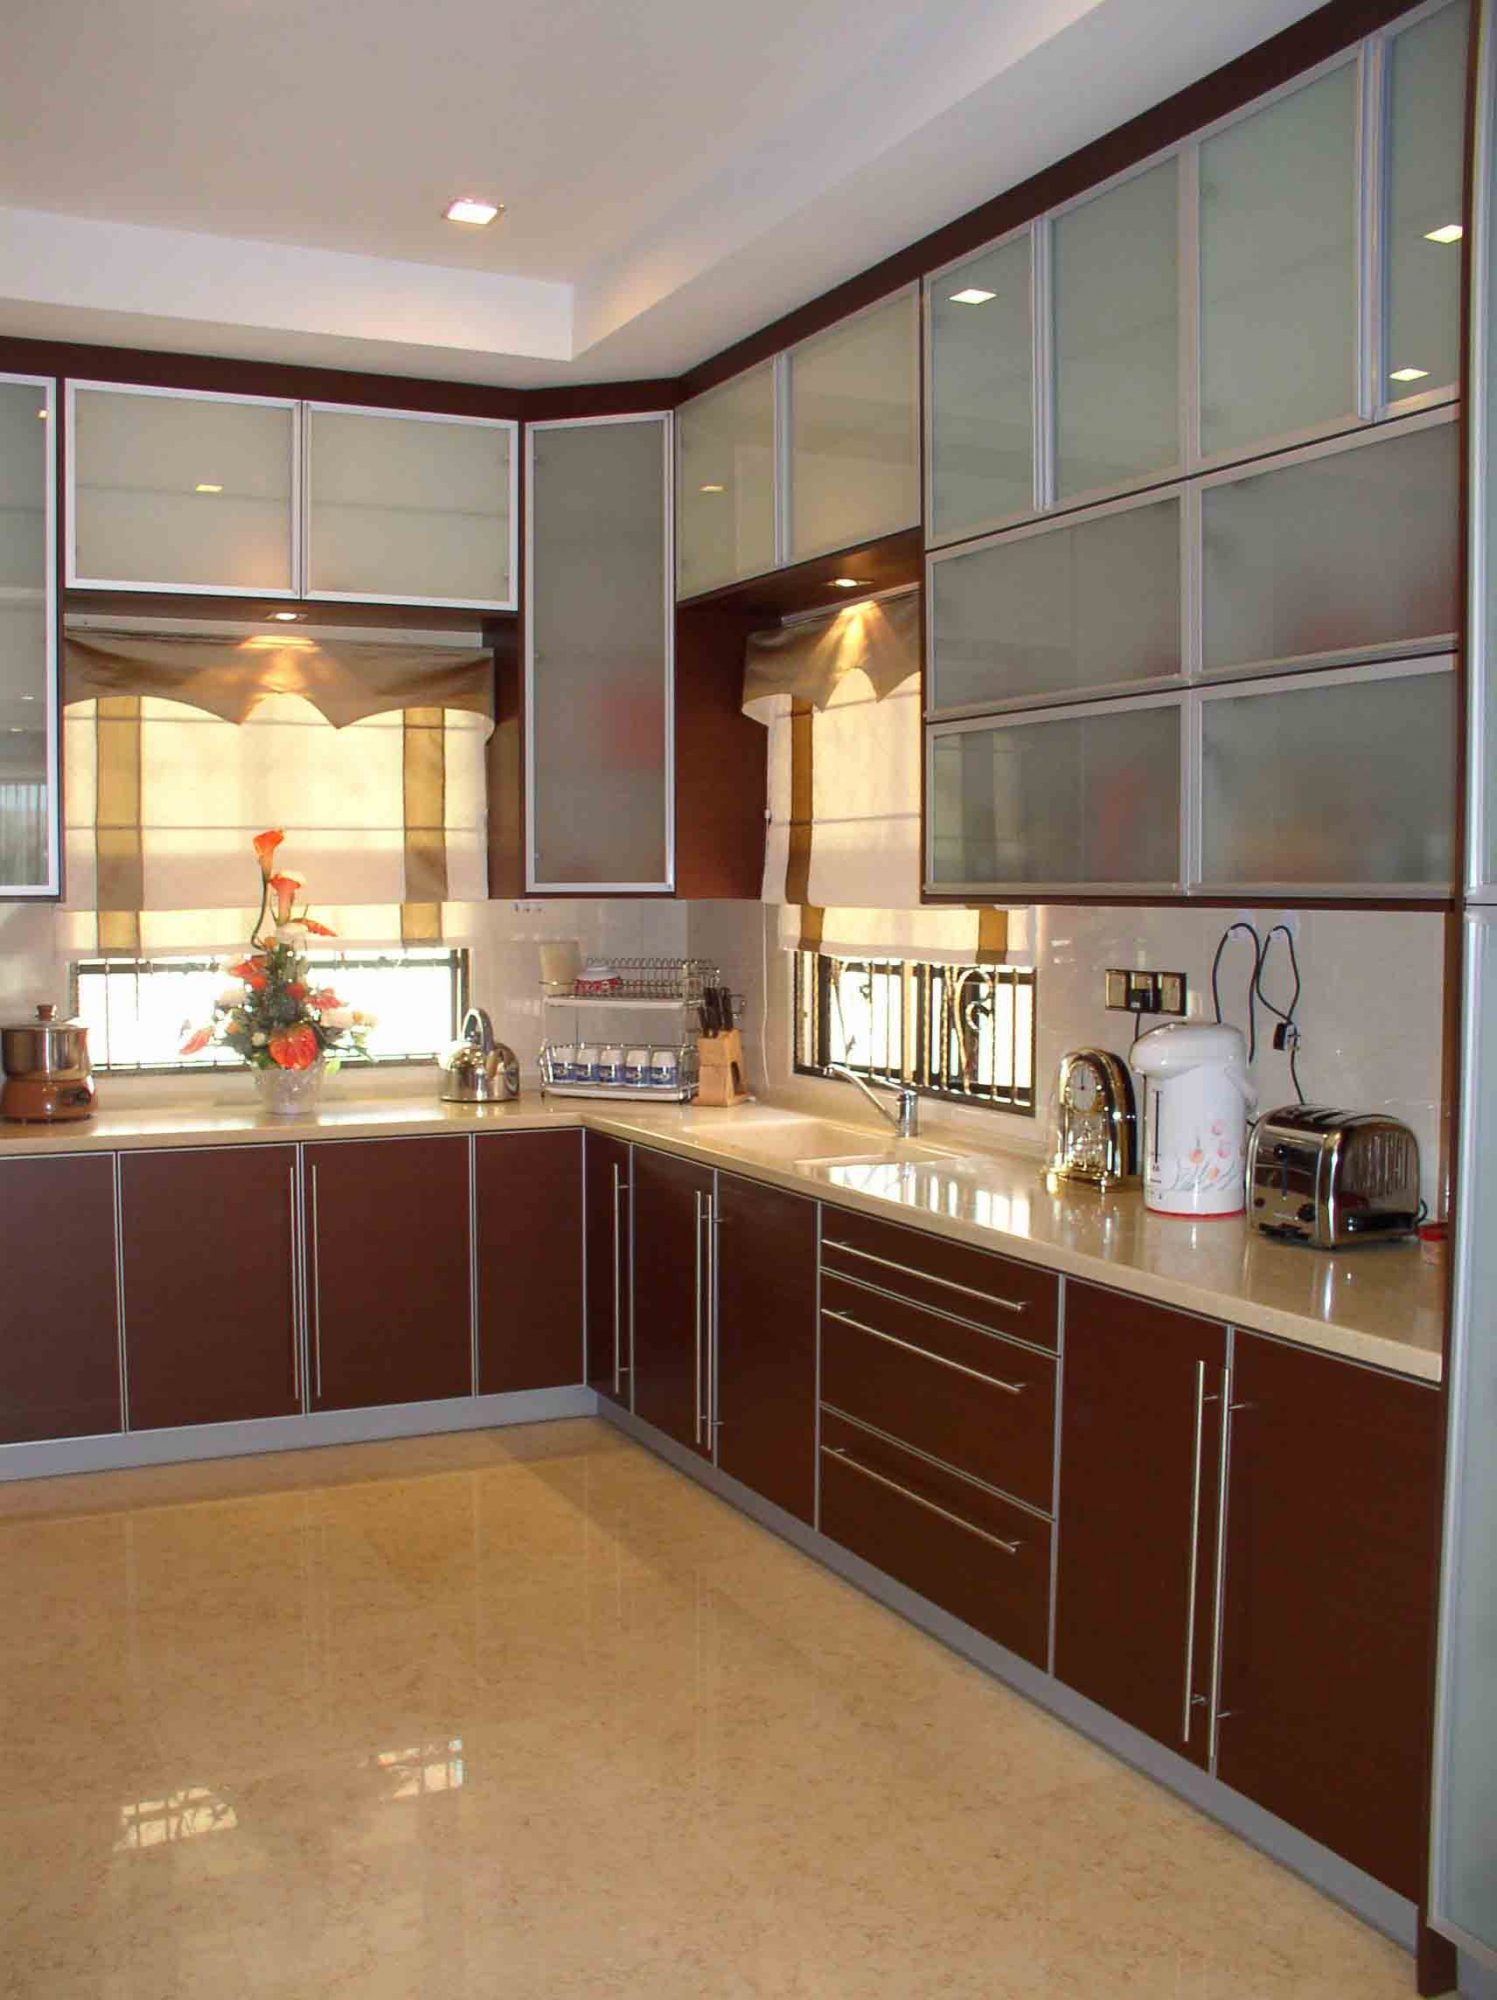 Cabinet Designs For Kitchens 20 Popular Kitchen Cabinet Designs In Malaysia Recommend